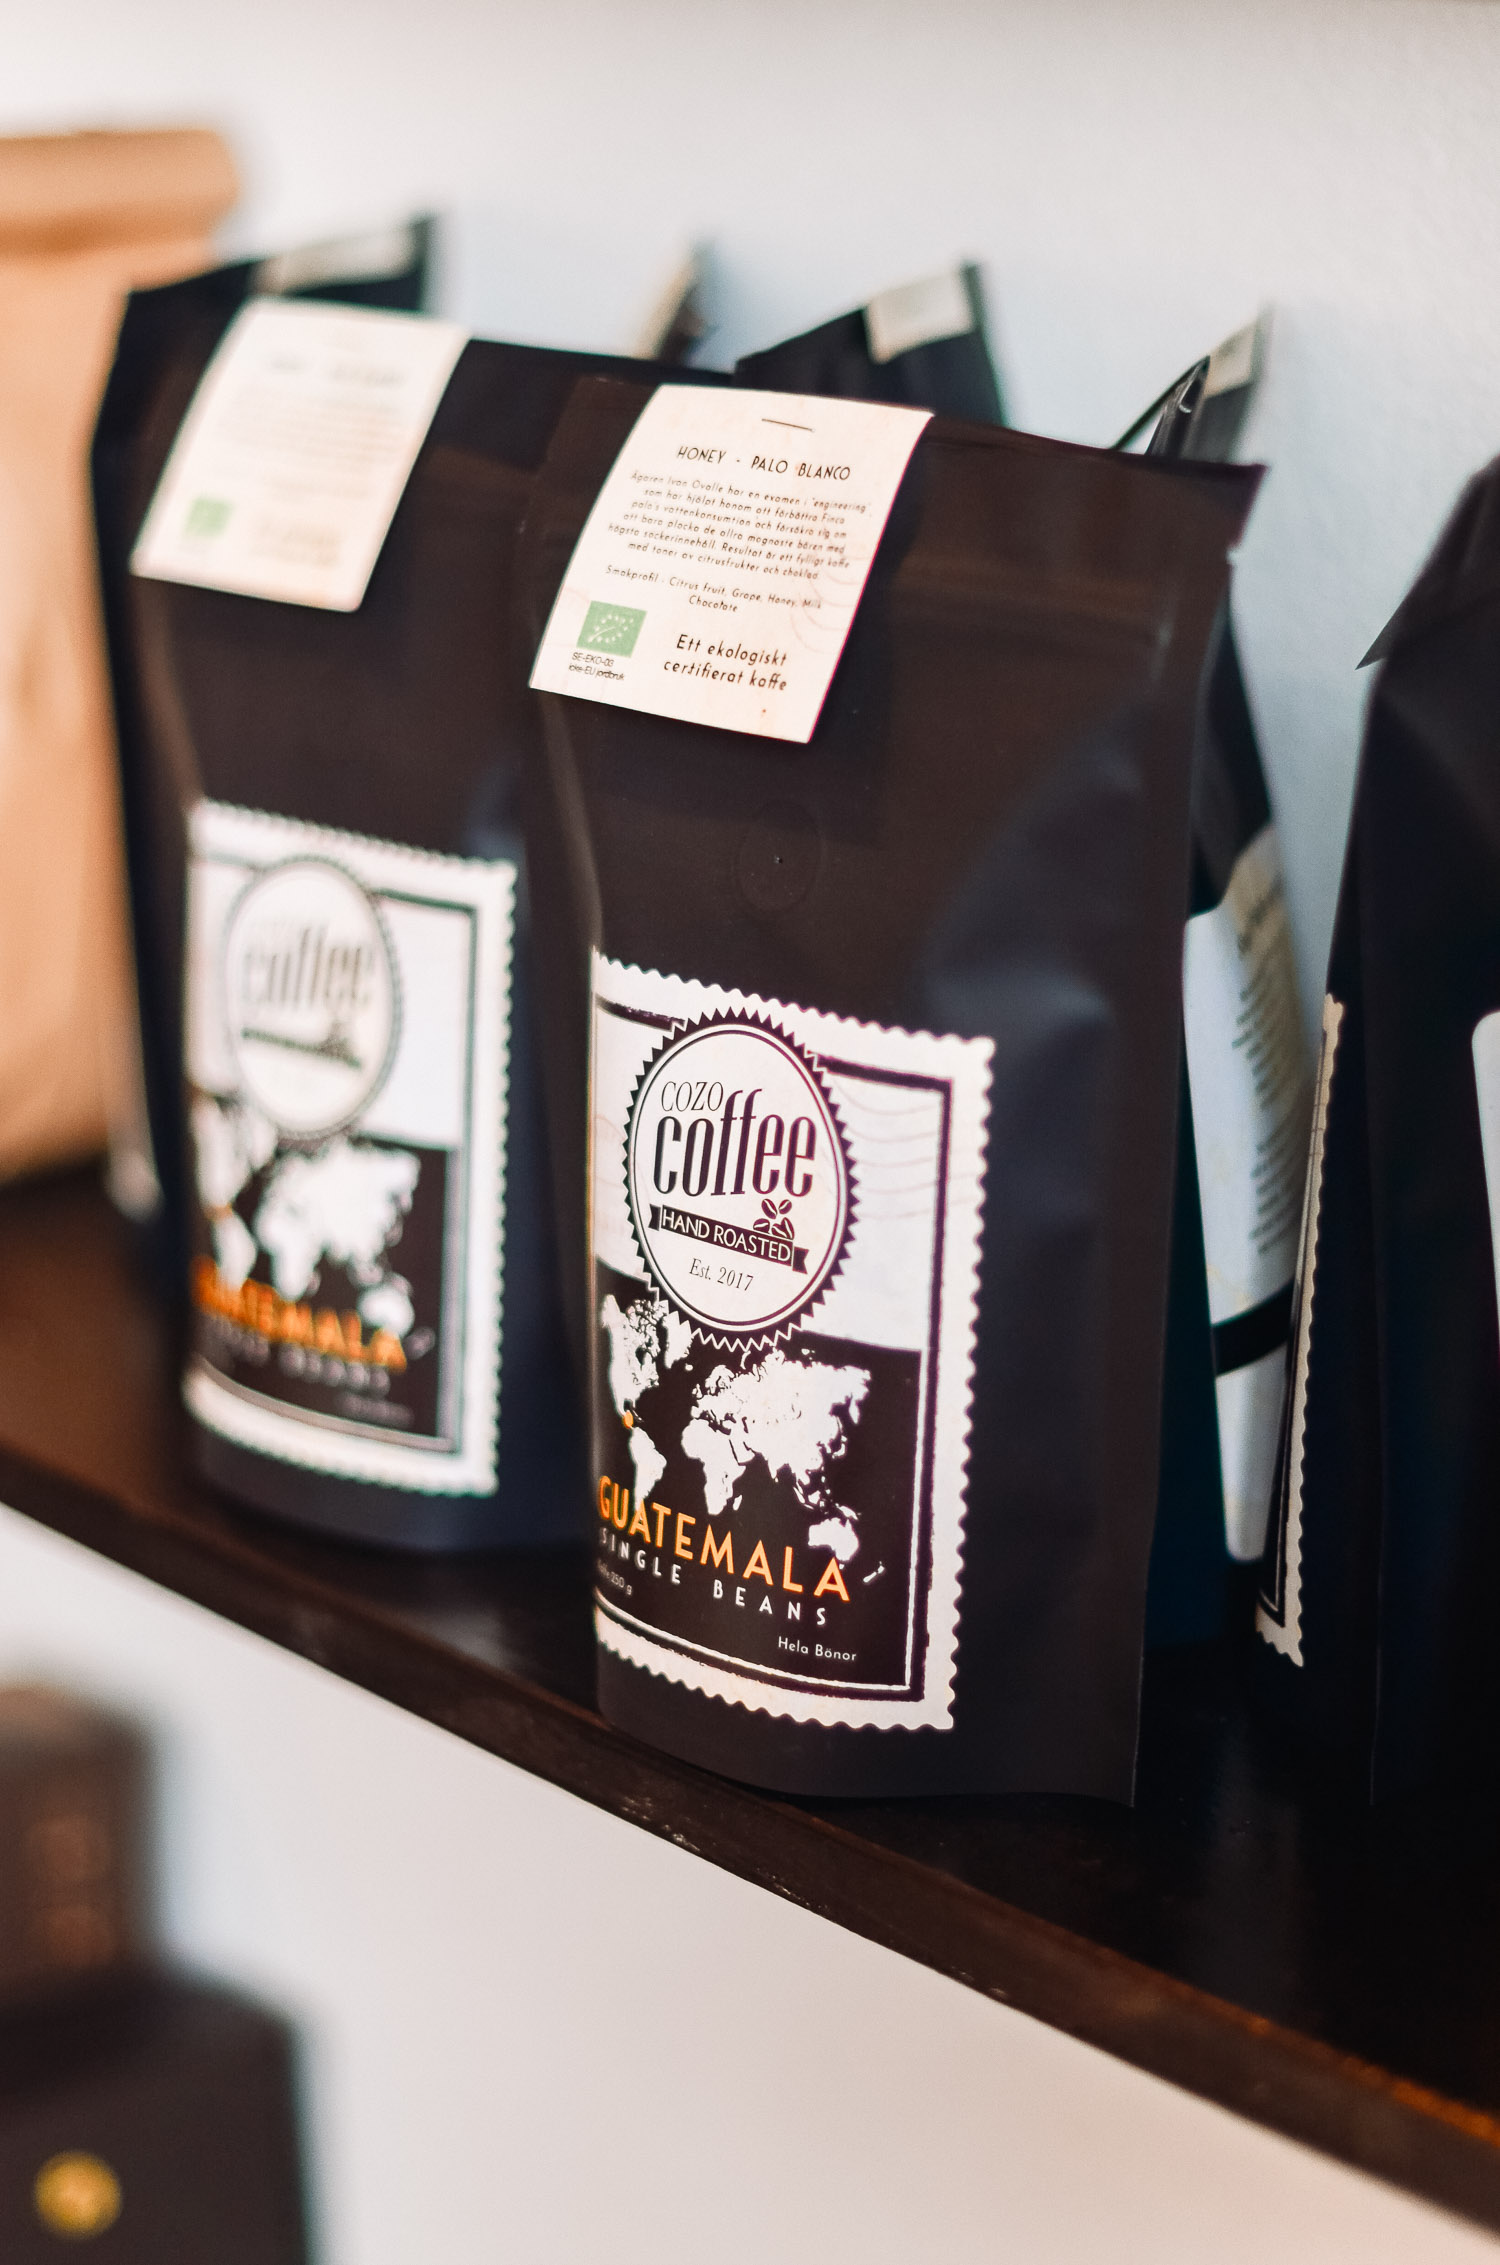 Sustainably grown specialty coffee from Cozo Coffee in Örebro